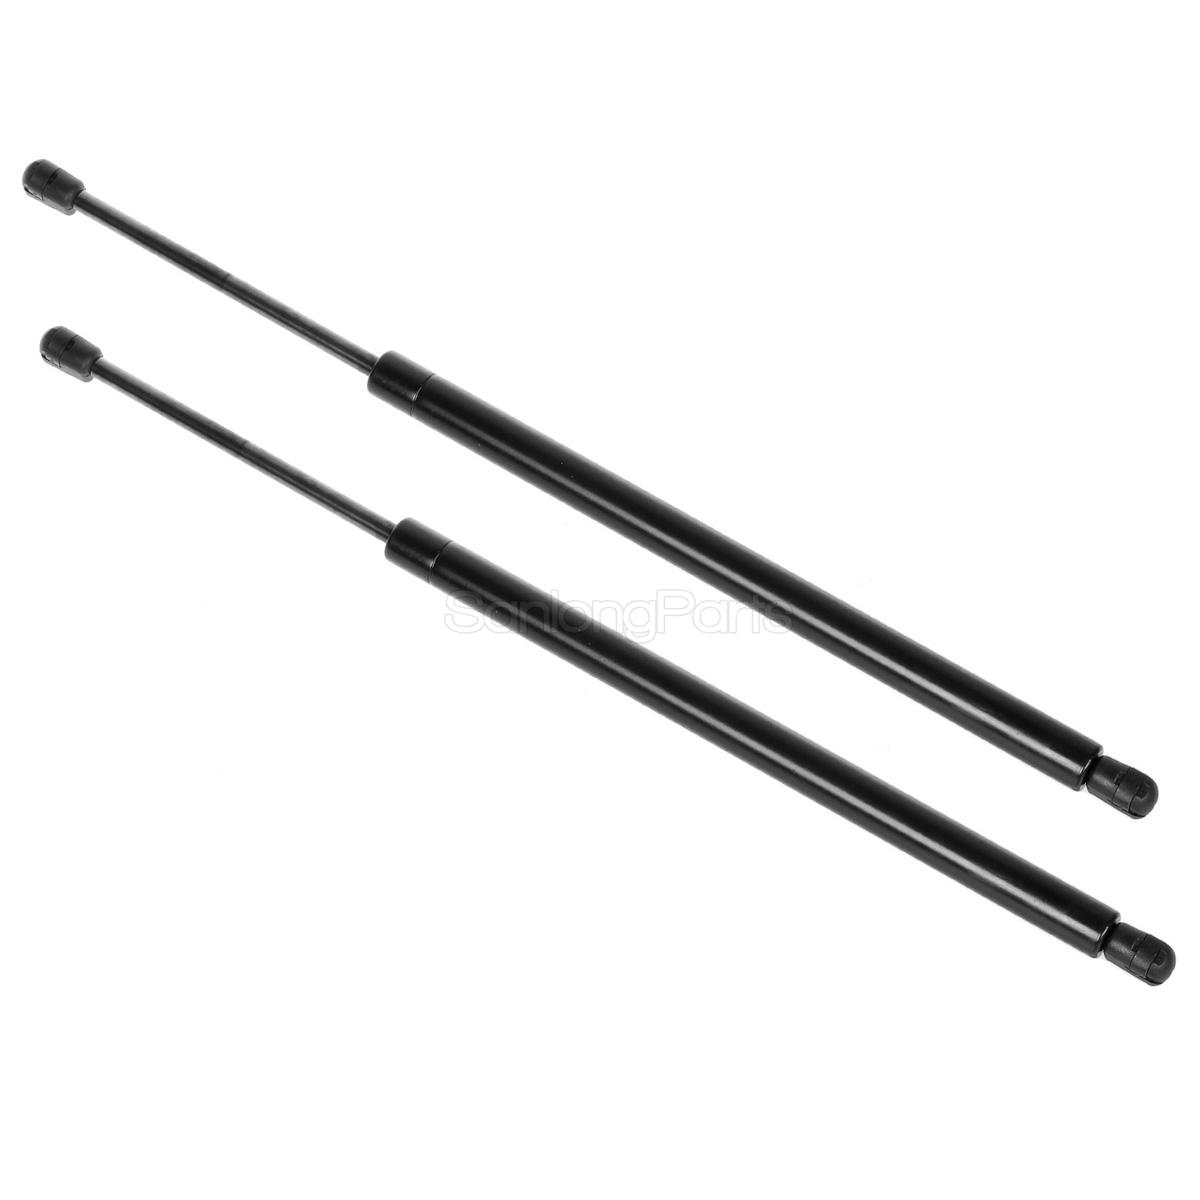 1pair Front Hood Lift Support Shocks Struts For